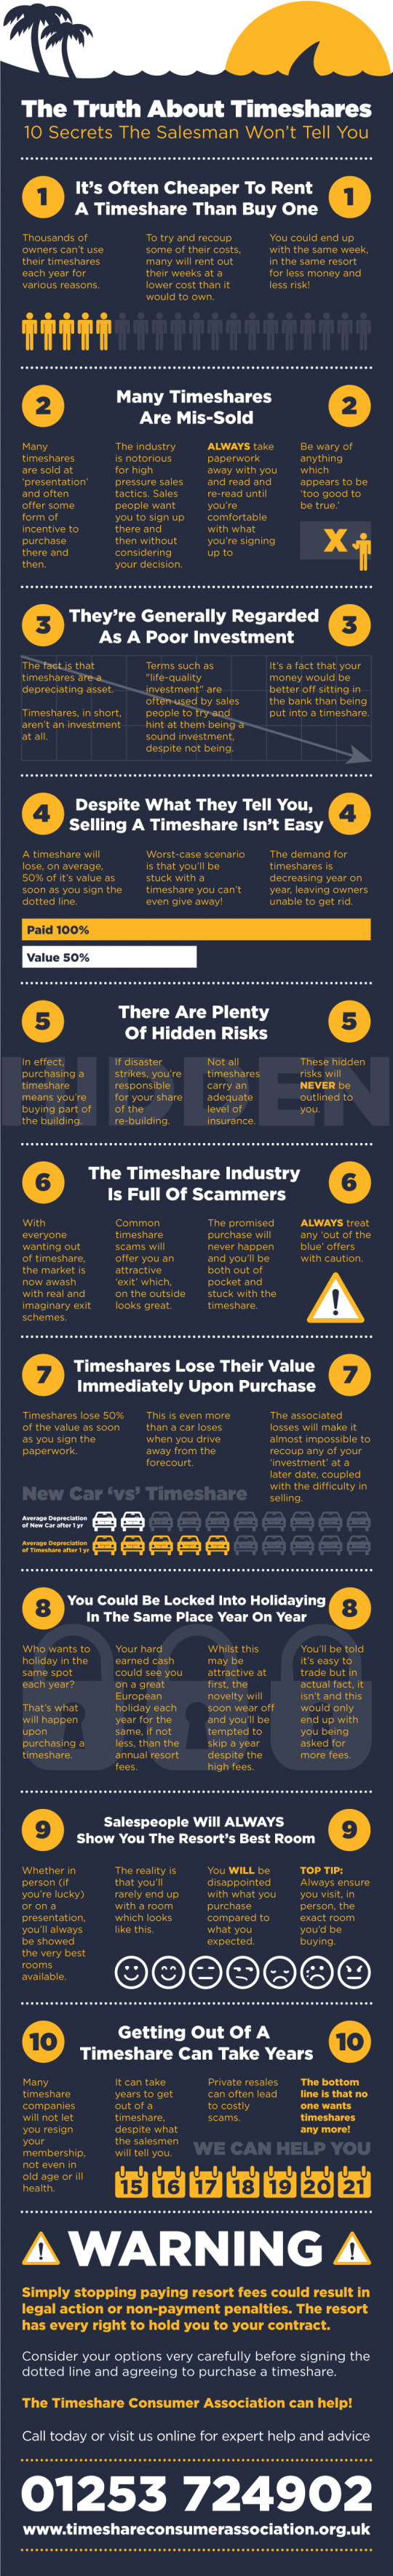 The Truth About Timeshares - 10 Secrets The Salesman Won